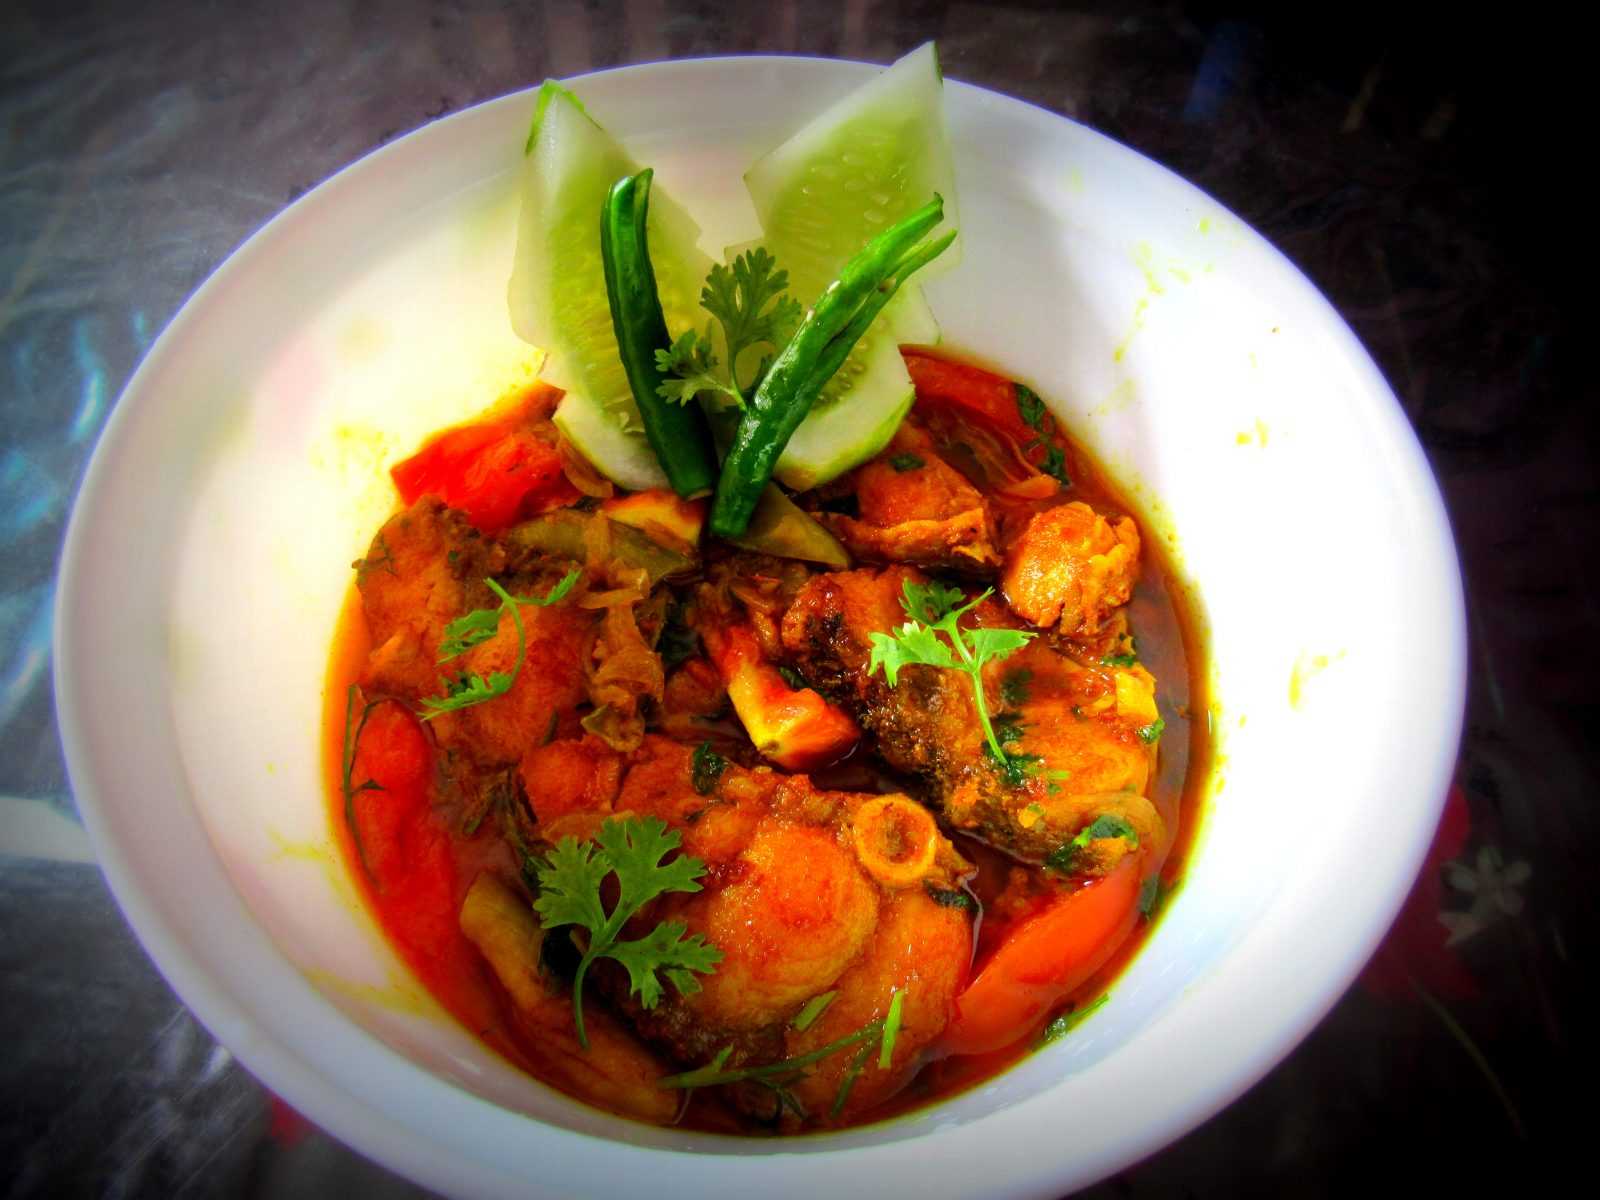 Rui Fish Curry from Momo's Cookhouse